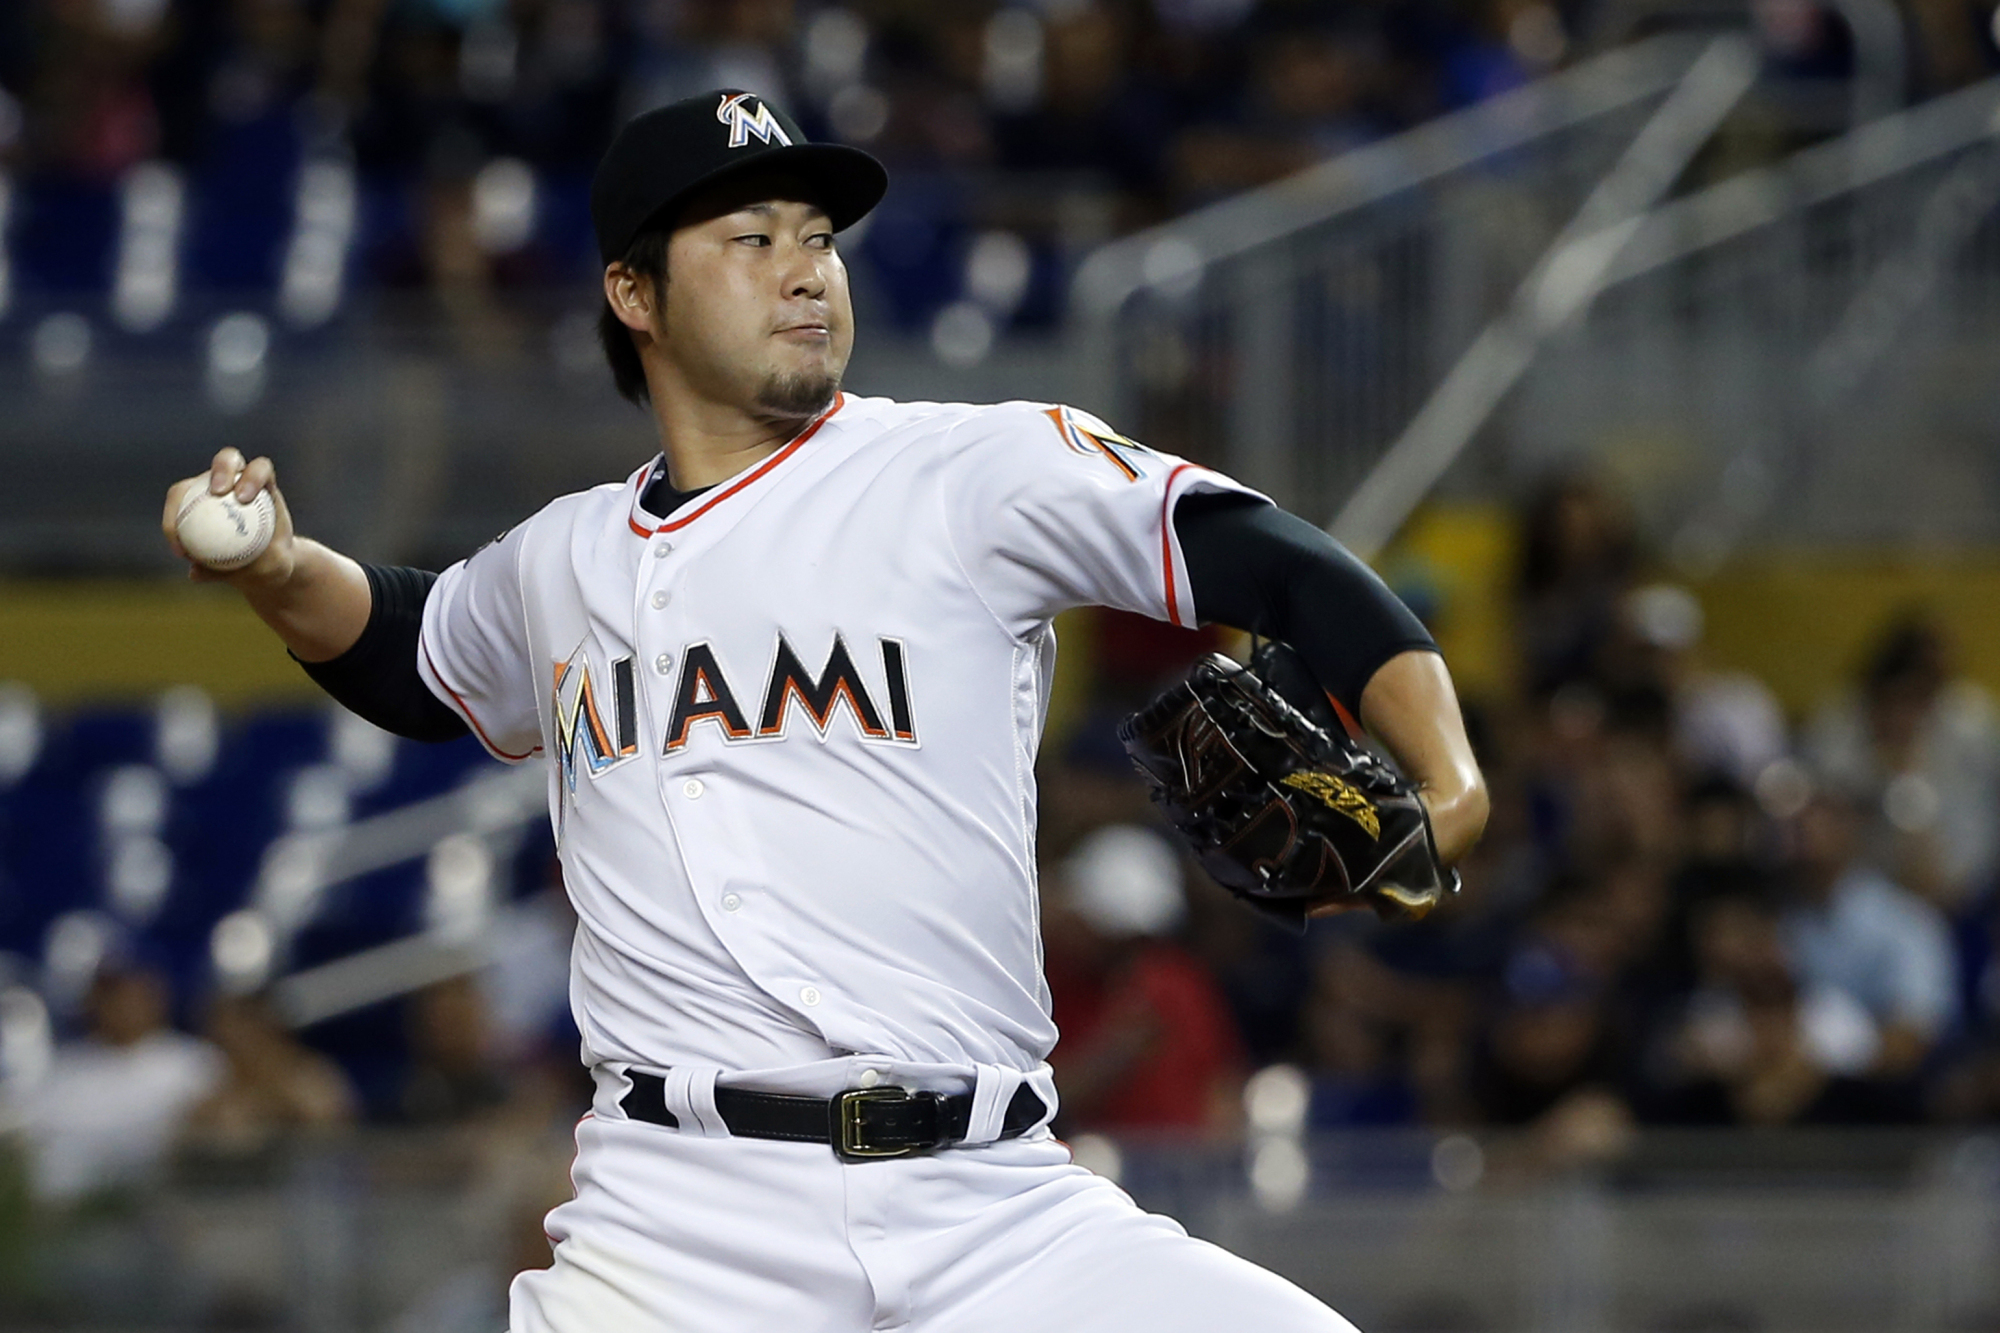 Miami's Junichi Tazawa pitches during the Marlins' game against the Dodgers on May 17. | AP